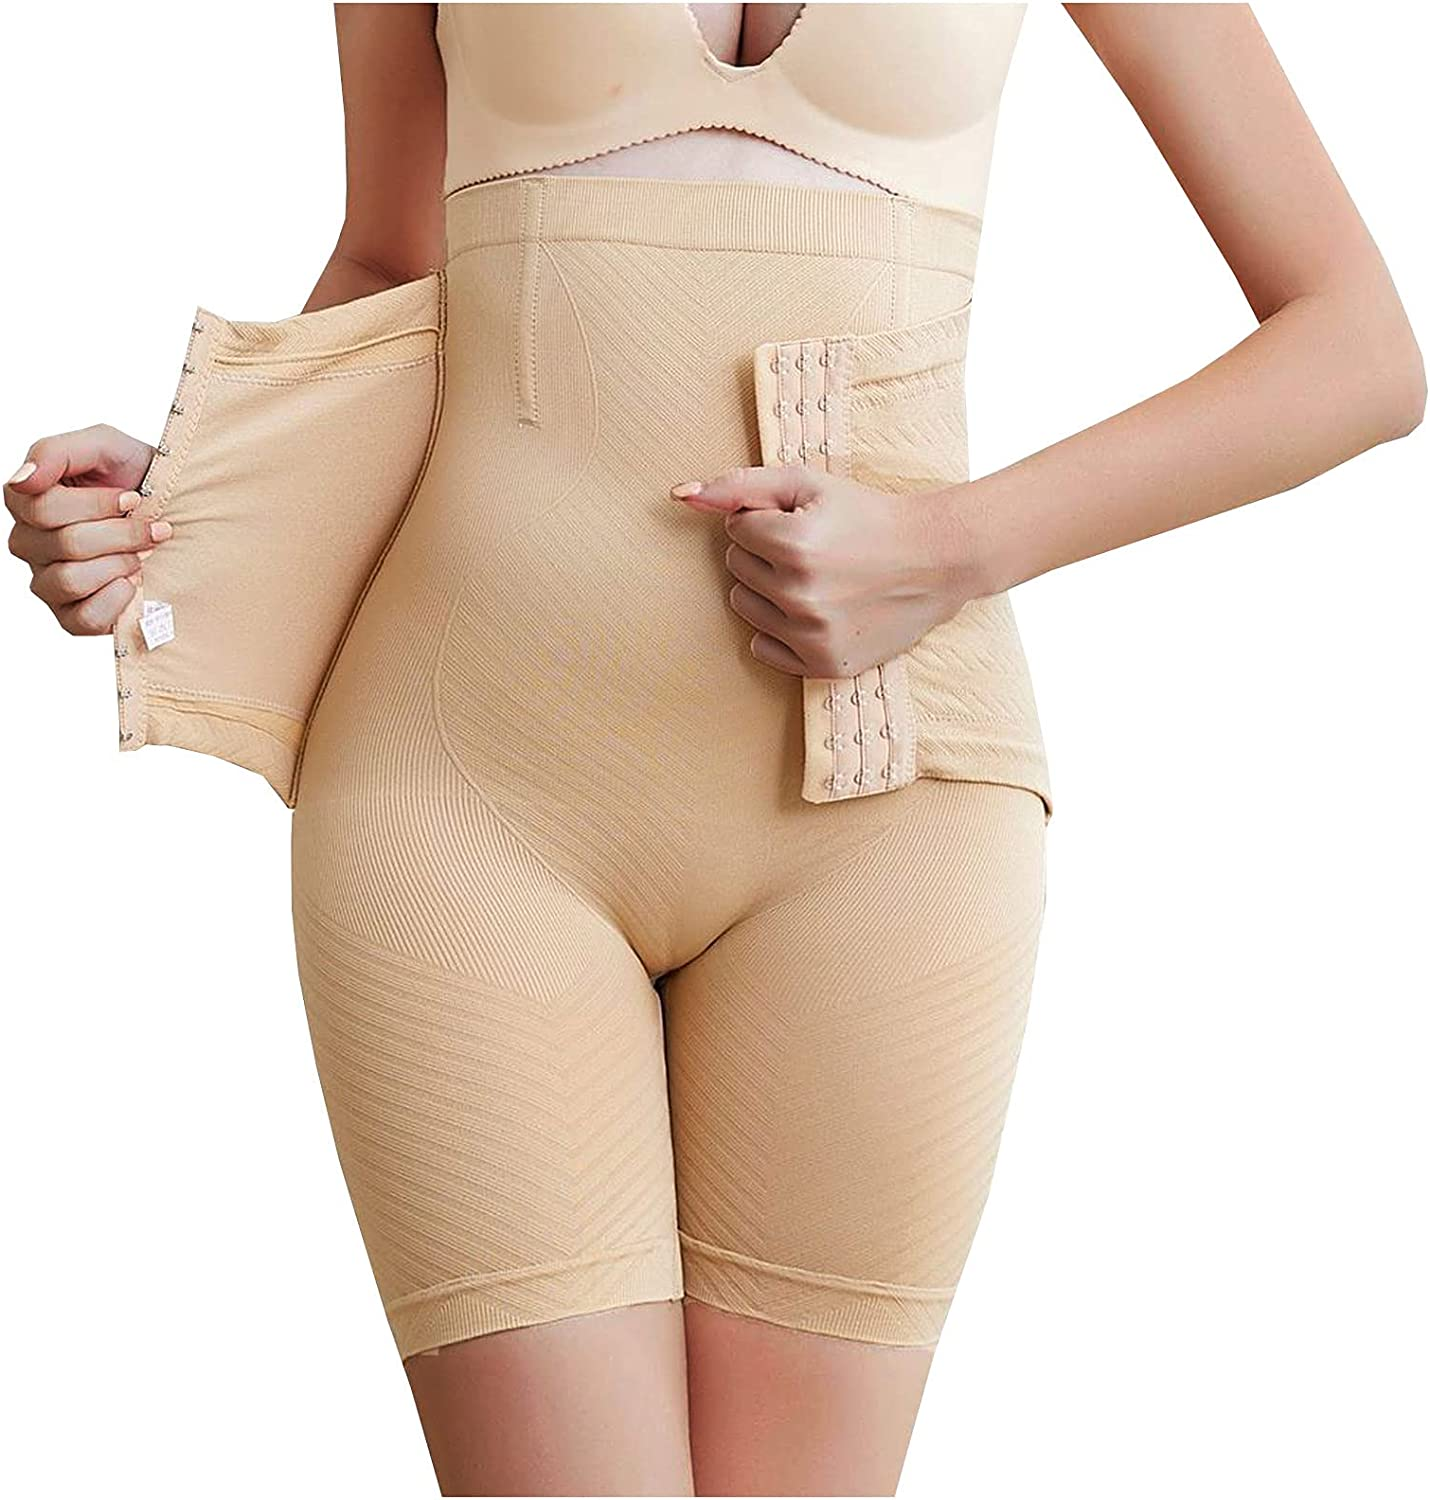 Exposed Buttock Hip Lifting Shapewear for Women Tummy Control, Women's Sexy Butt Lifter Pants Body Shaper Seamless Panties